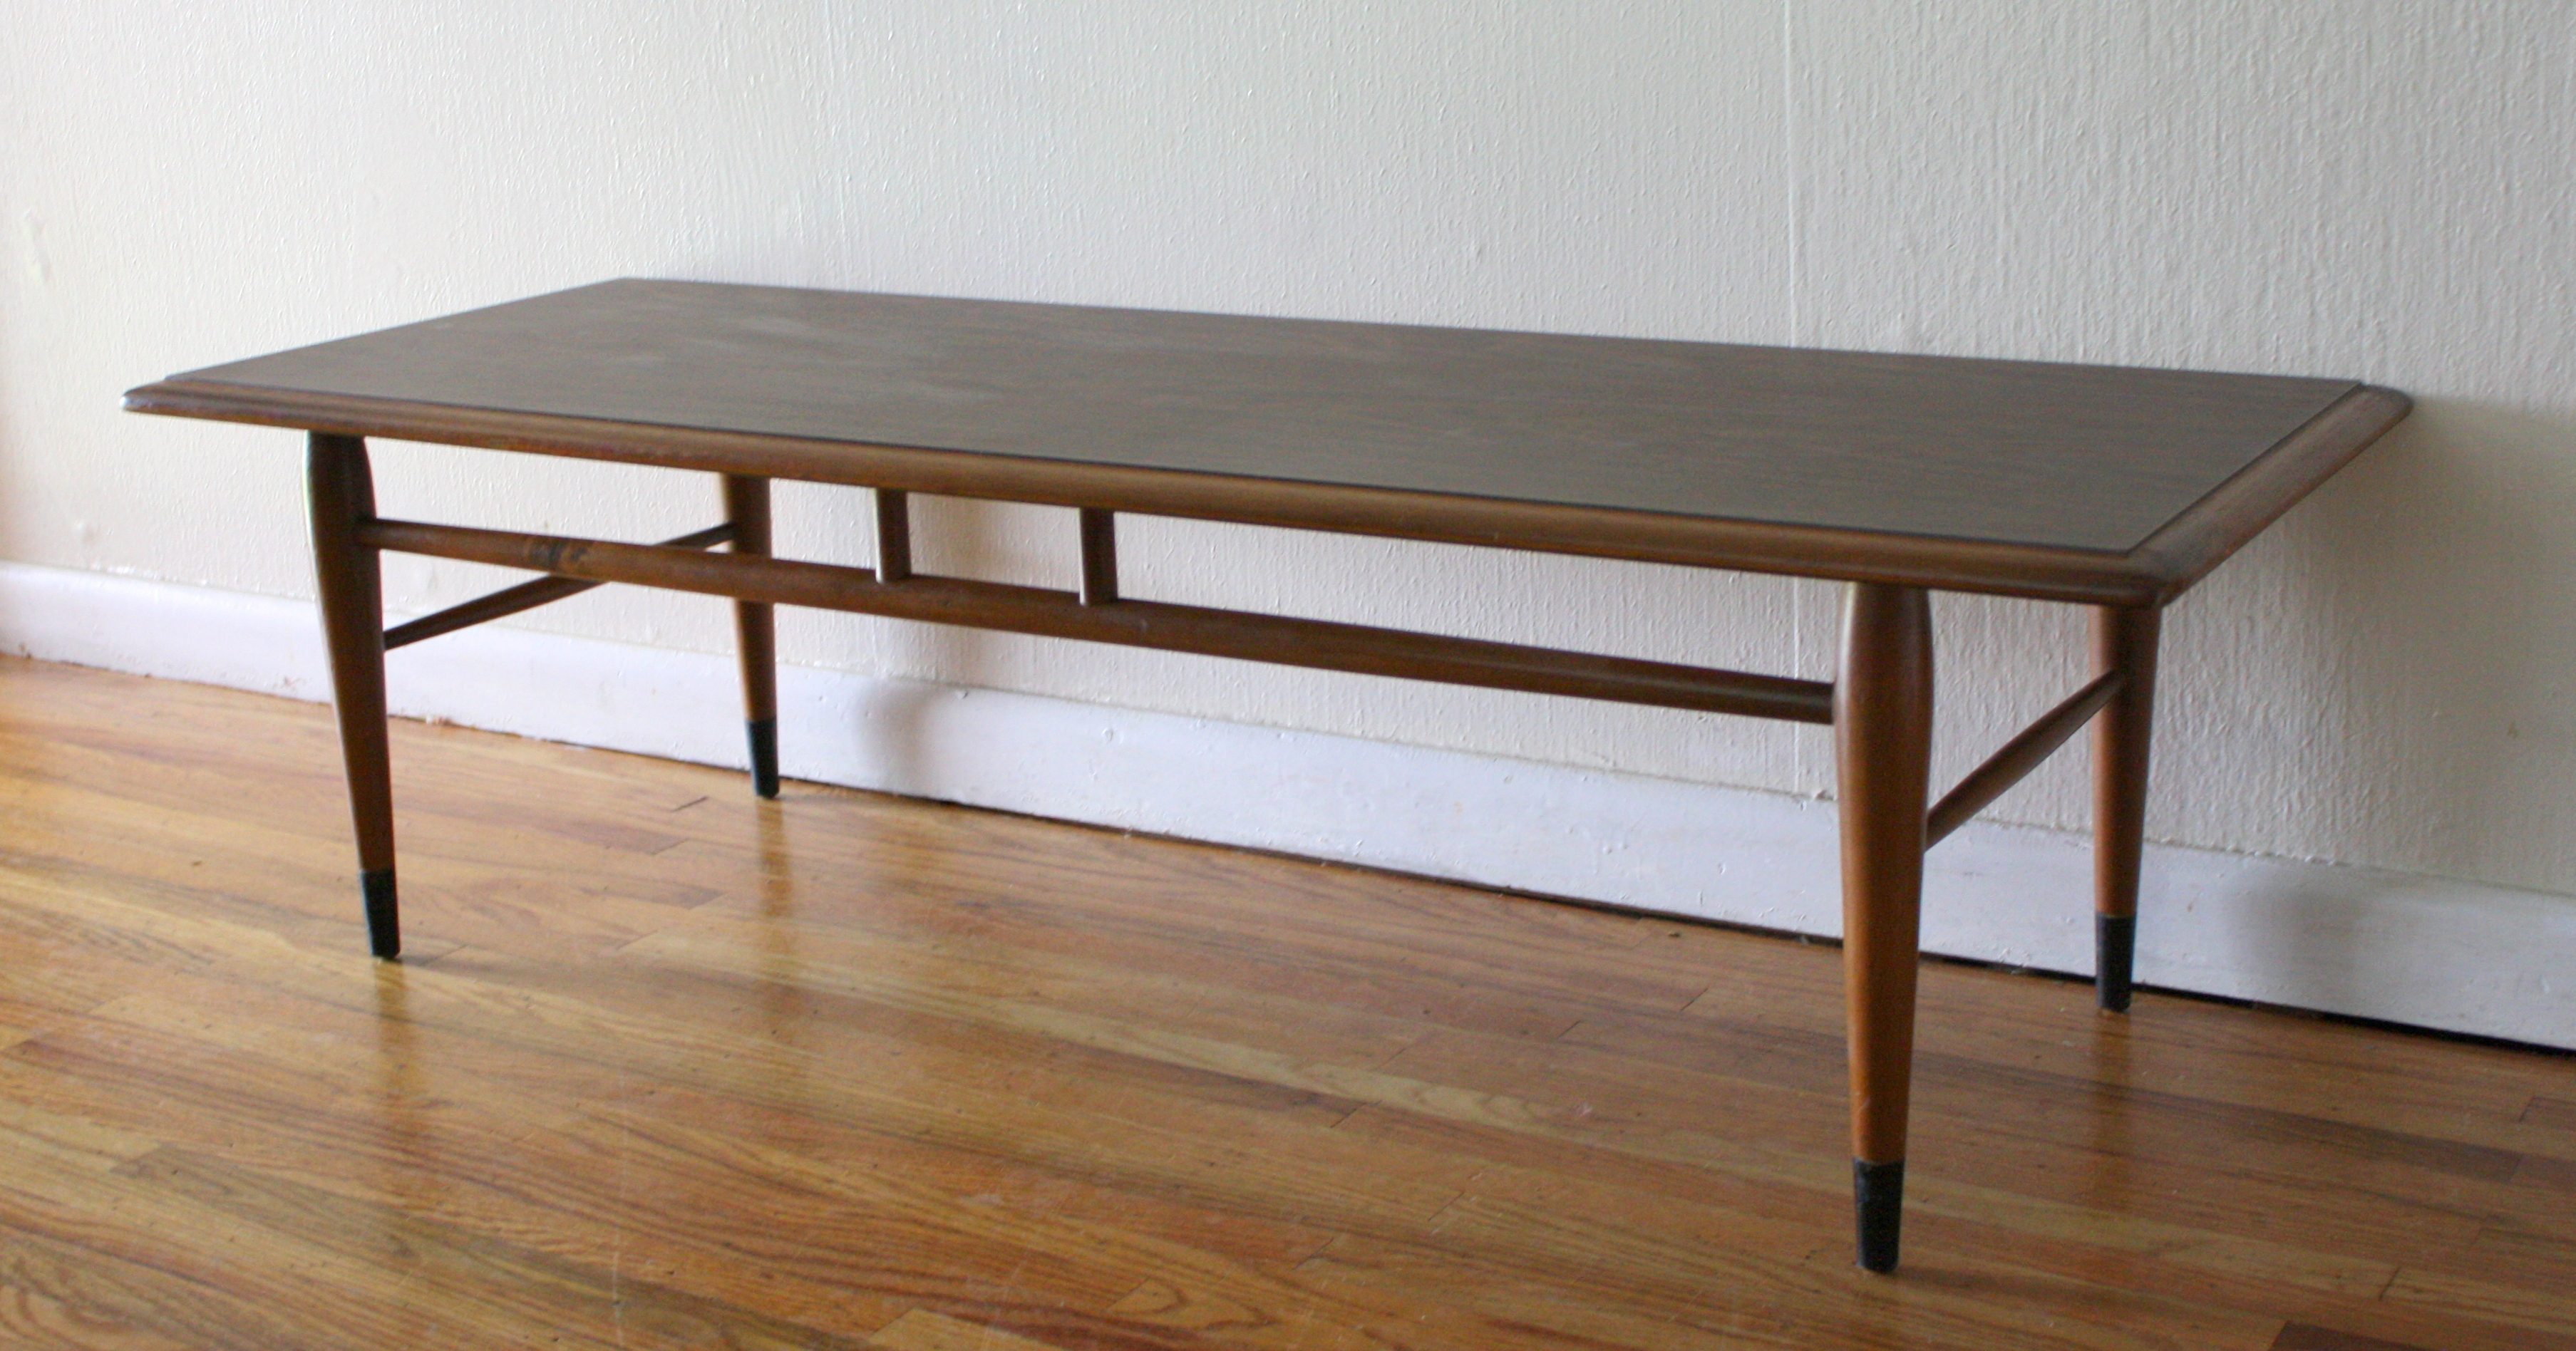 Mid century modern coffee table by lane picked vintage for Mid century modern coffee table